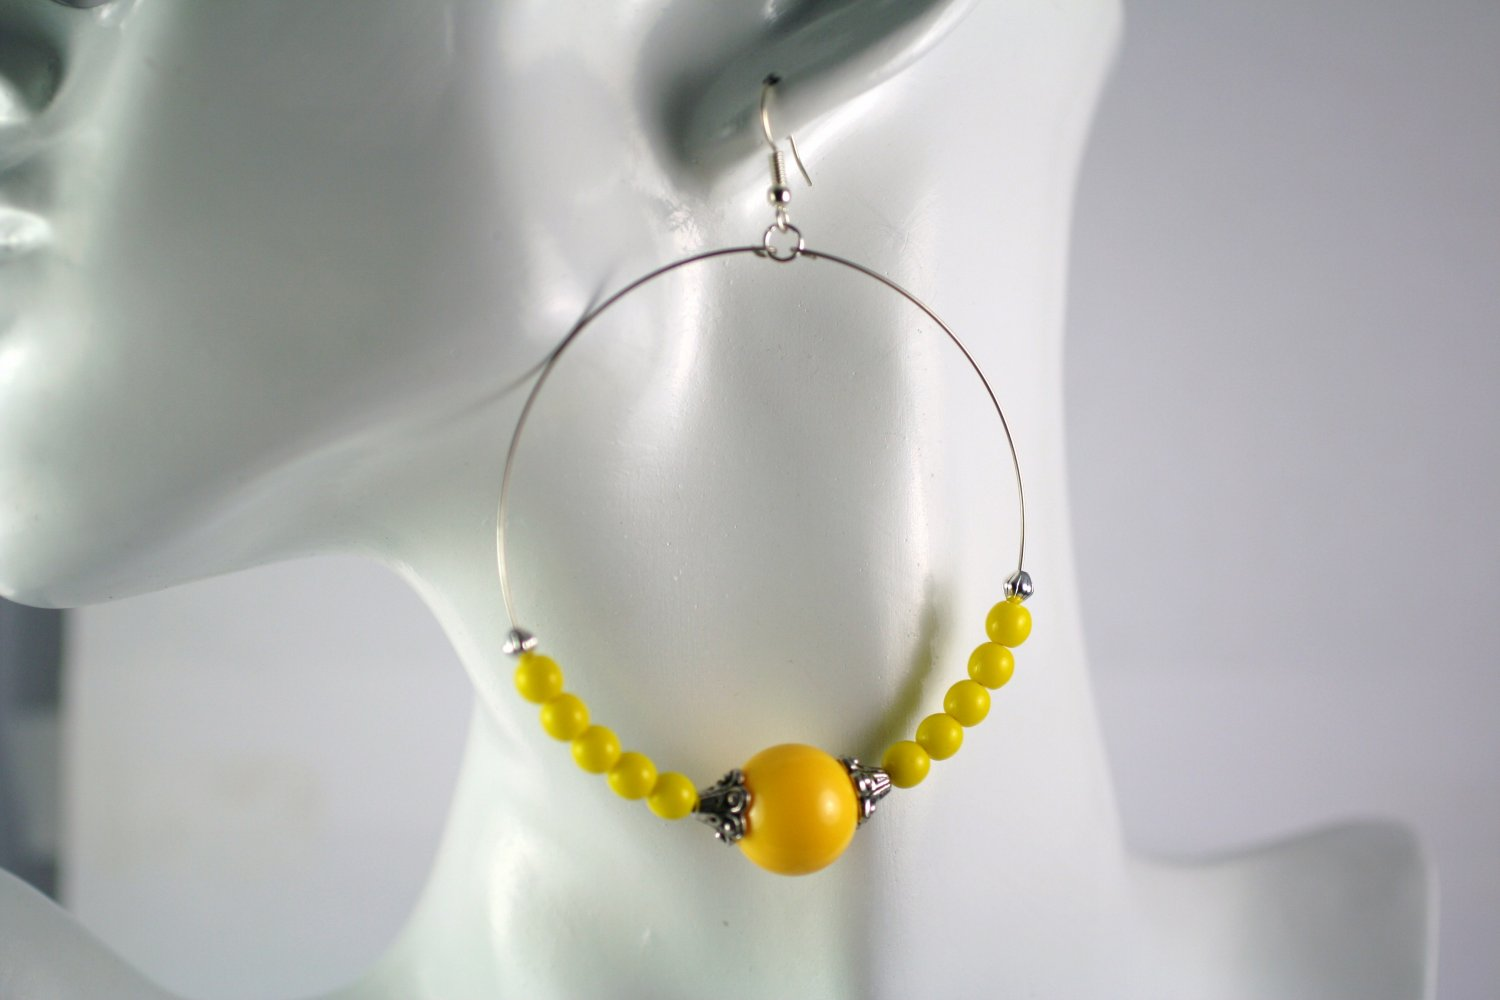 Large Silver Hoop Earrings with Yellow Beads 2.5 in.  Handcrafted Jewelry